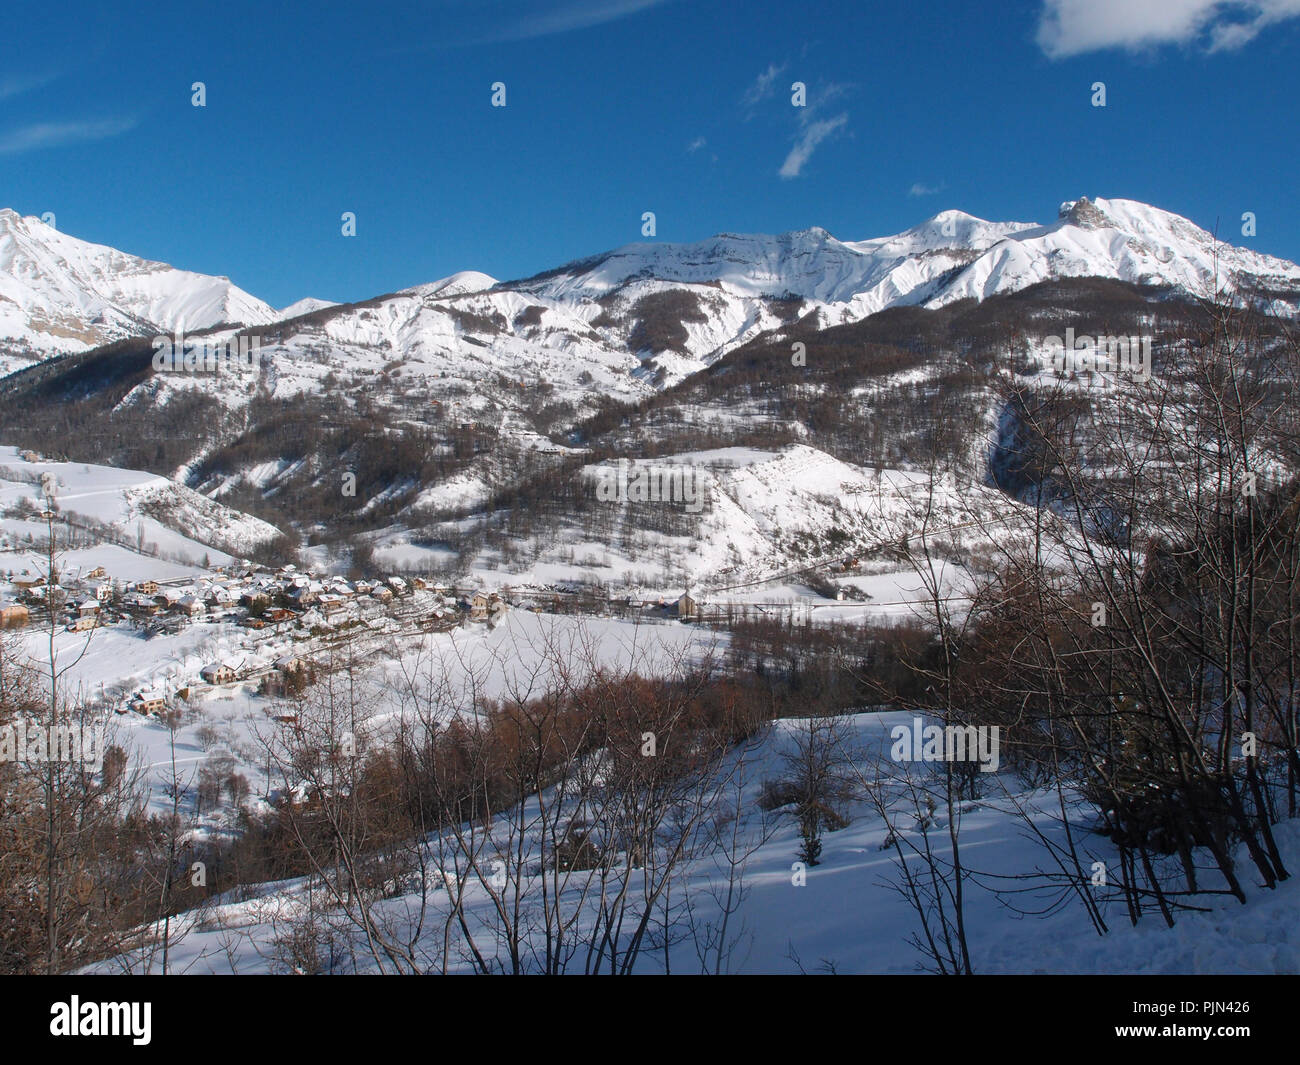 Ski resort of the Val d'Allos in the french Alpes - Stock Image